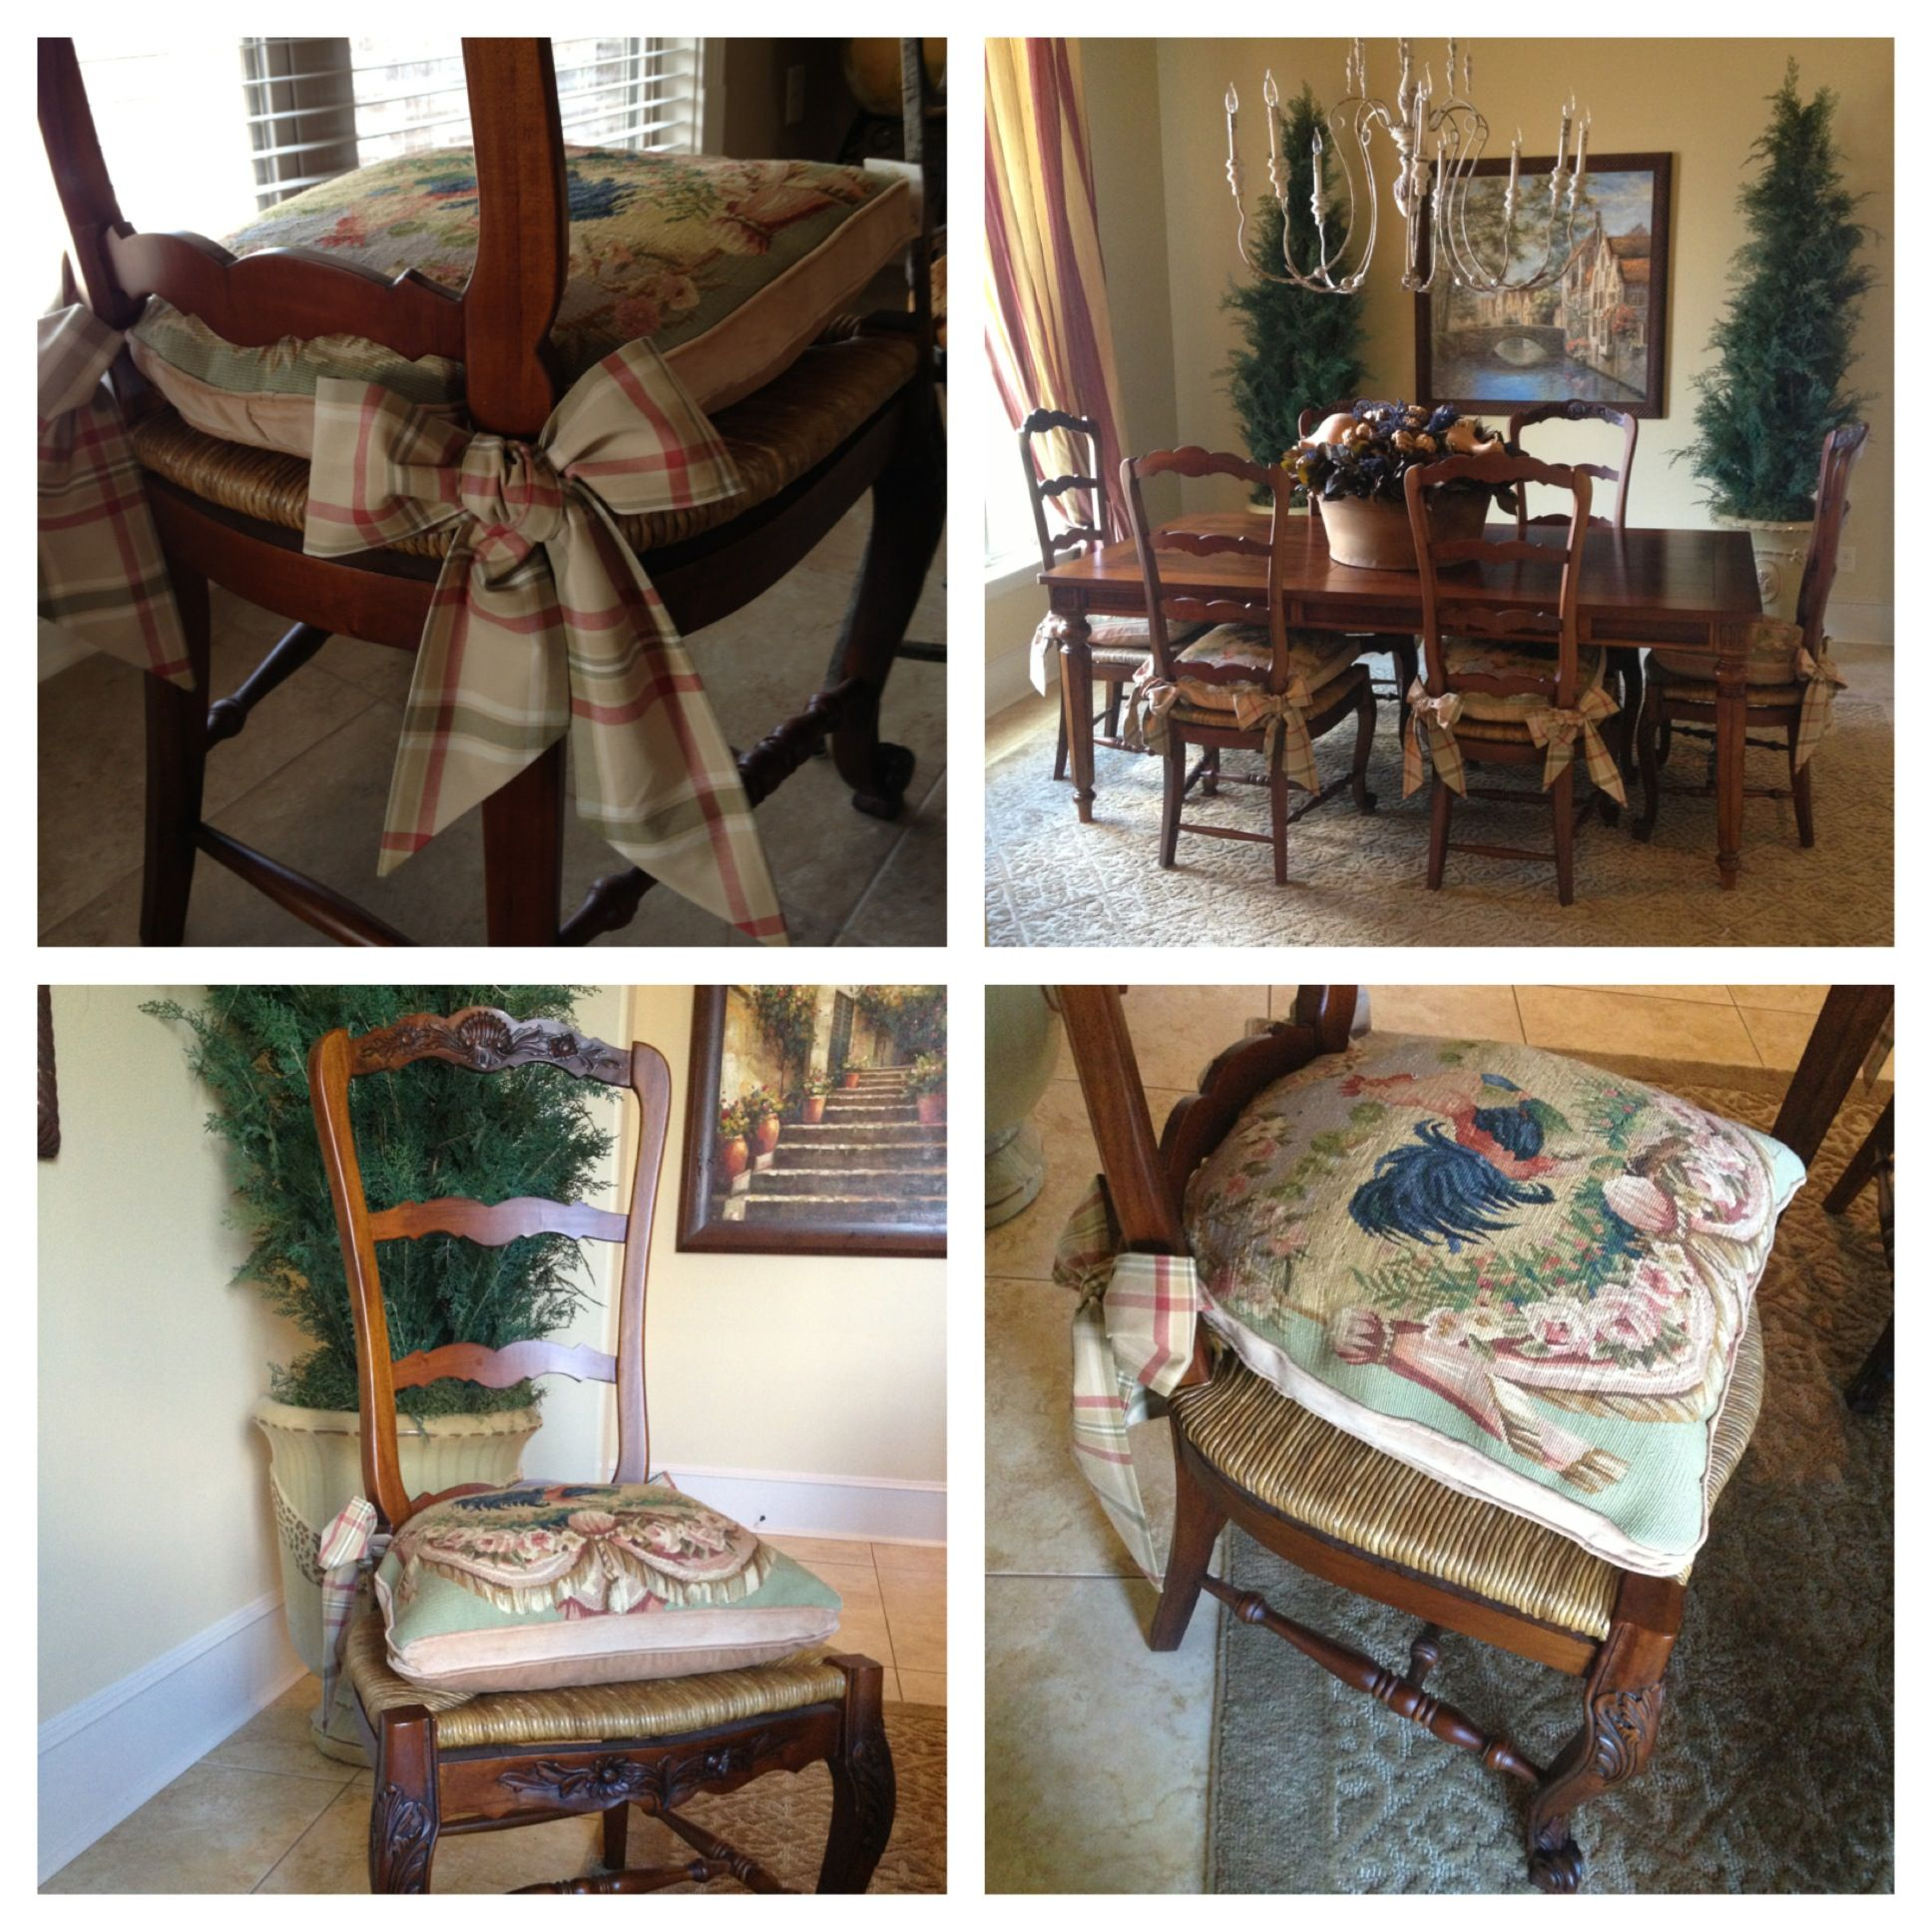 How To Make Dining Room Chair Cushions: Needlepoint Cushions With Tie Backs (Roxanne), Ladder Back Chairs